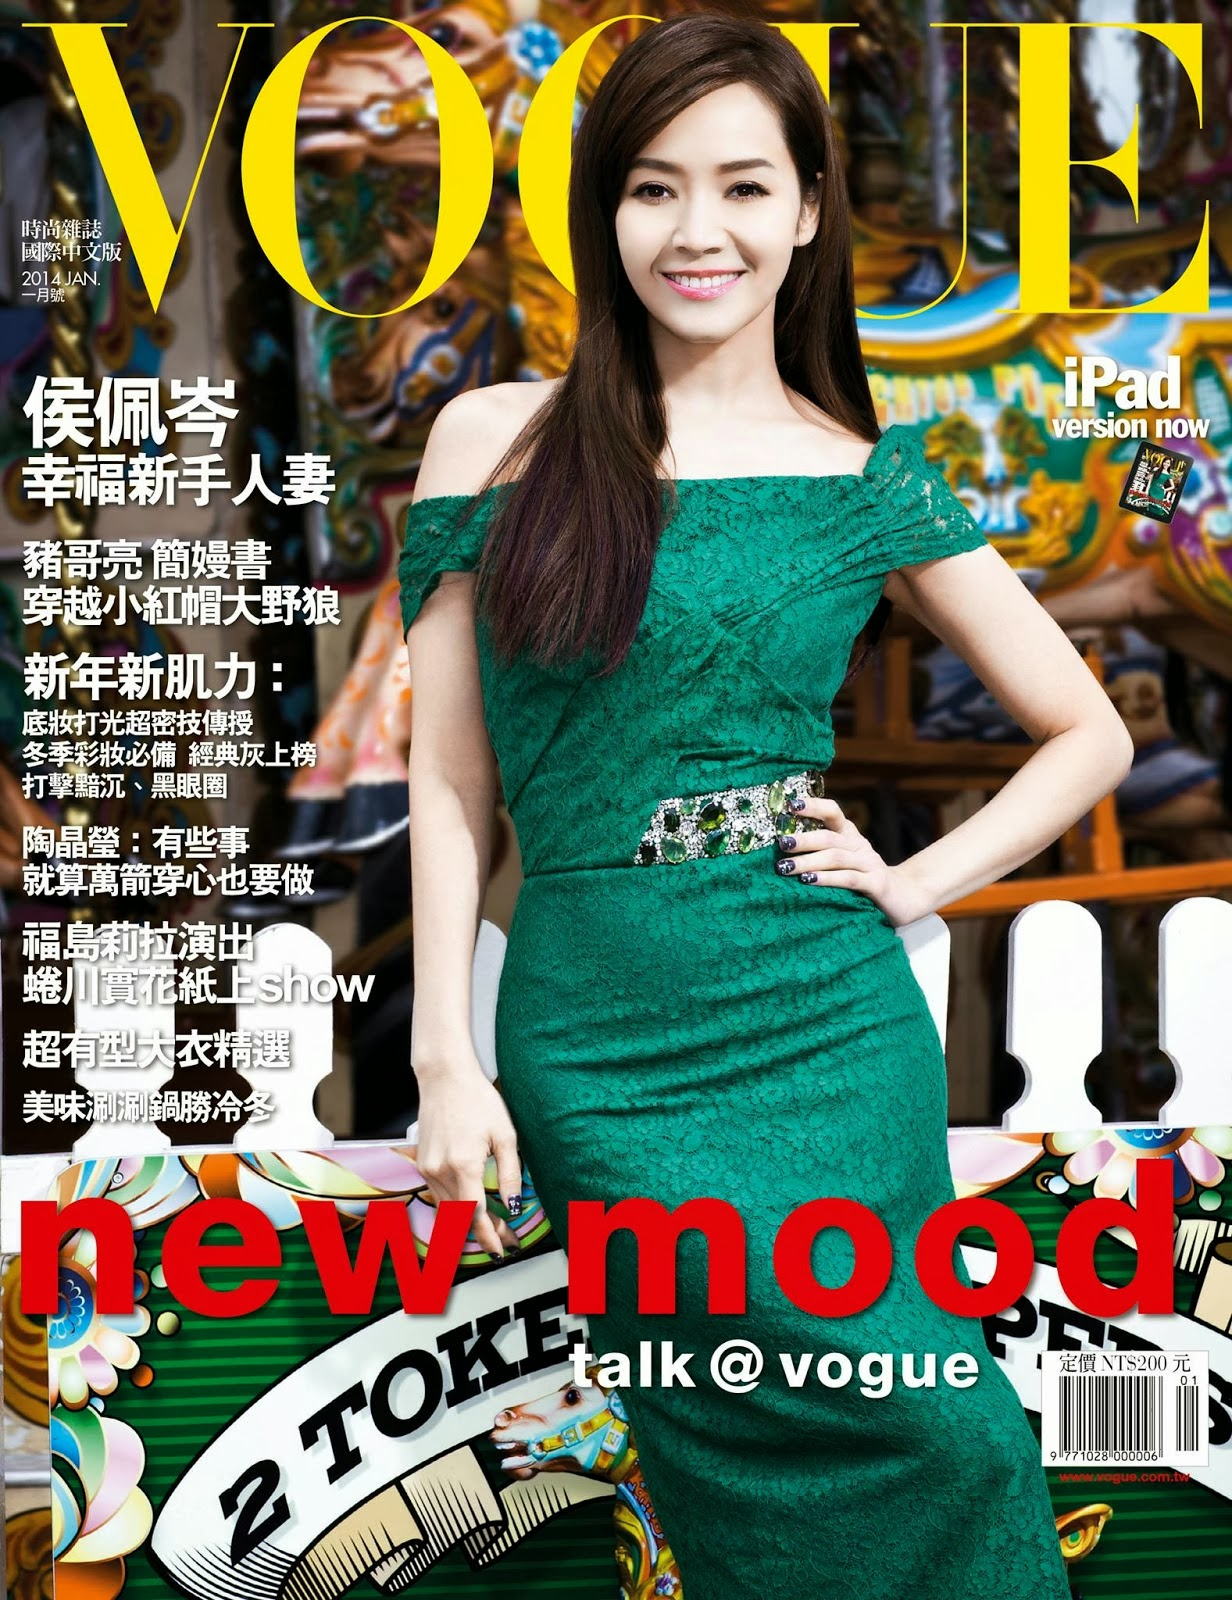 Magazine Cover : Patty Hou Magazine Photoshoot Pics on Vogue Magazine Taiwan January 2014 Issue